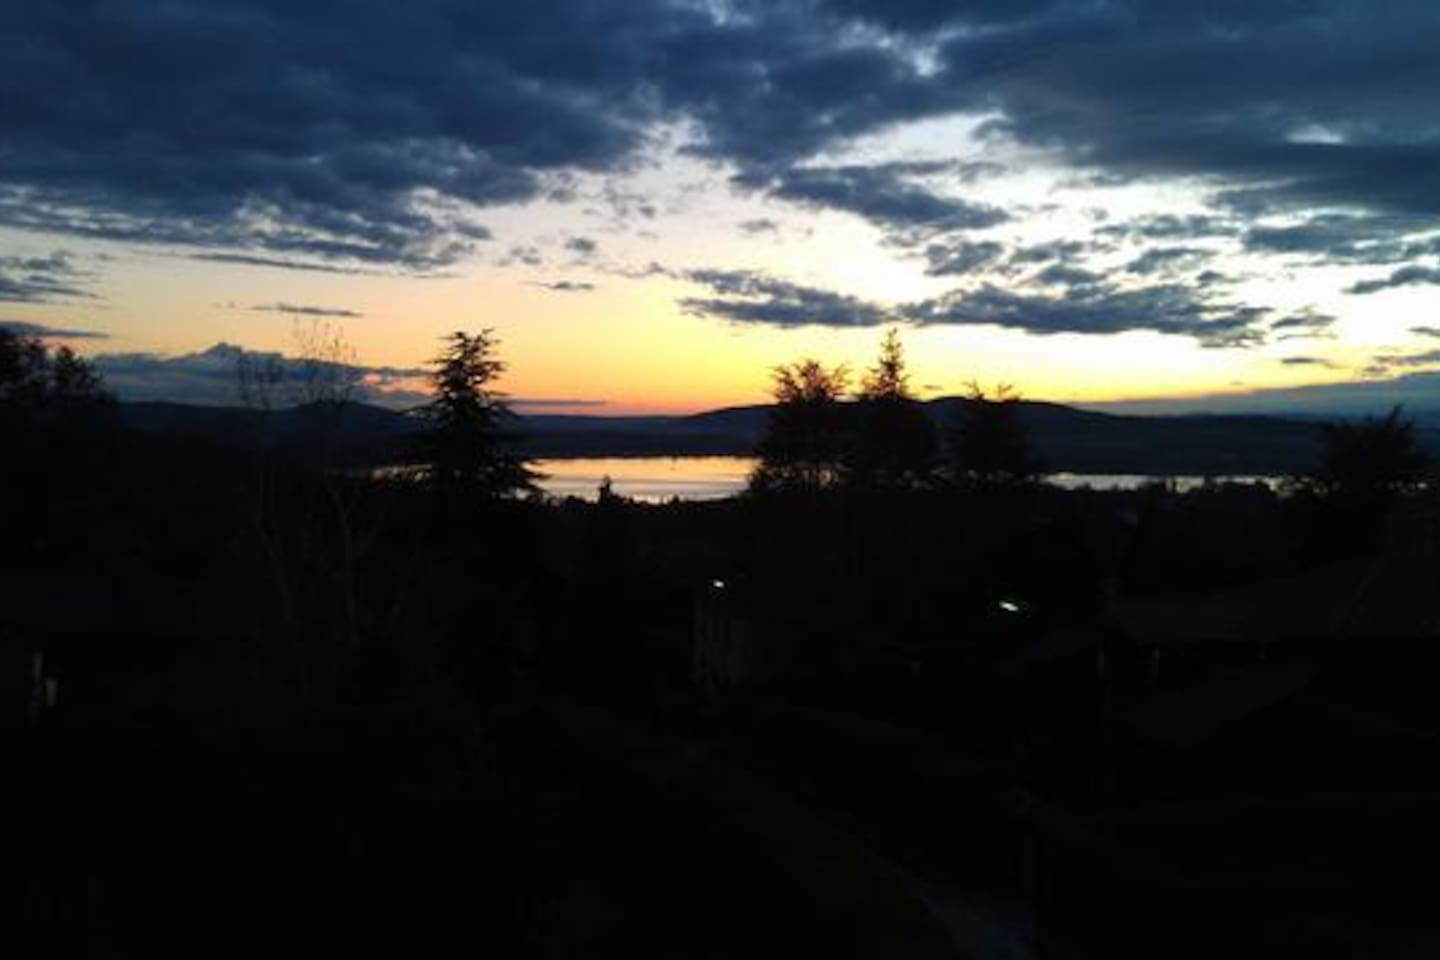 RELAXBARASSO - a beautiful sunset on the Varese Lake from the balcony